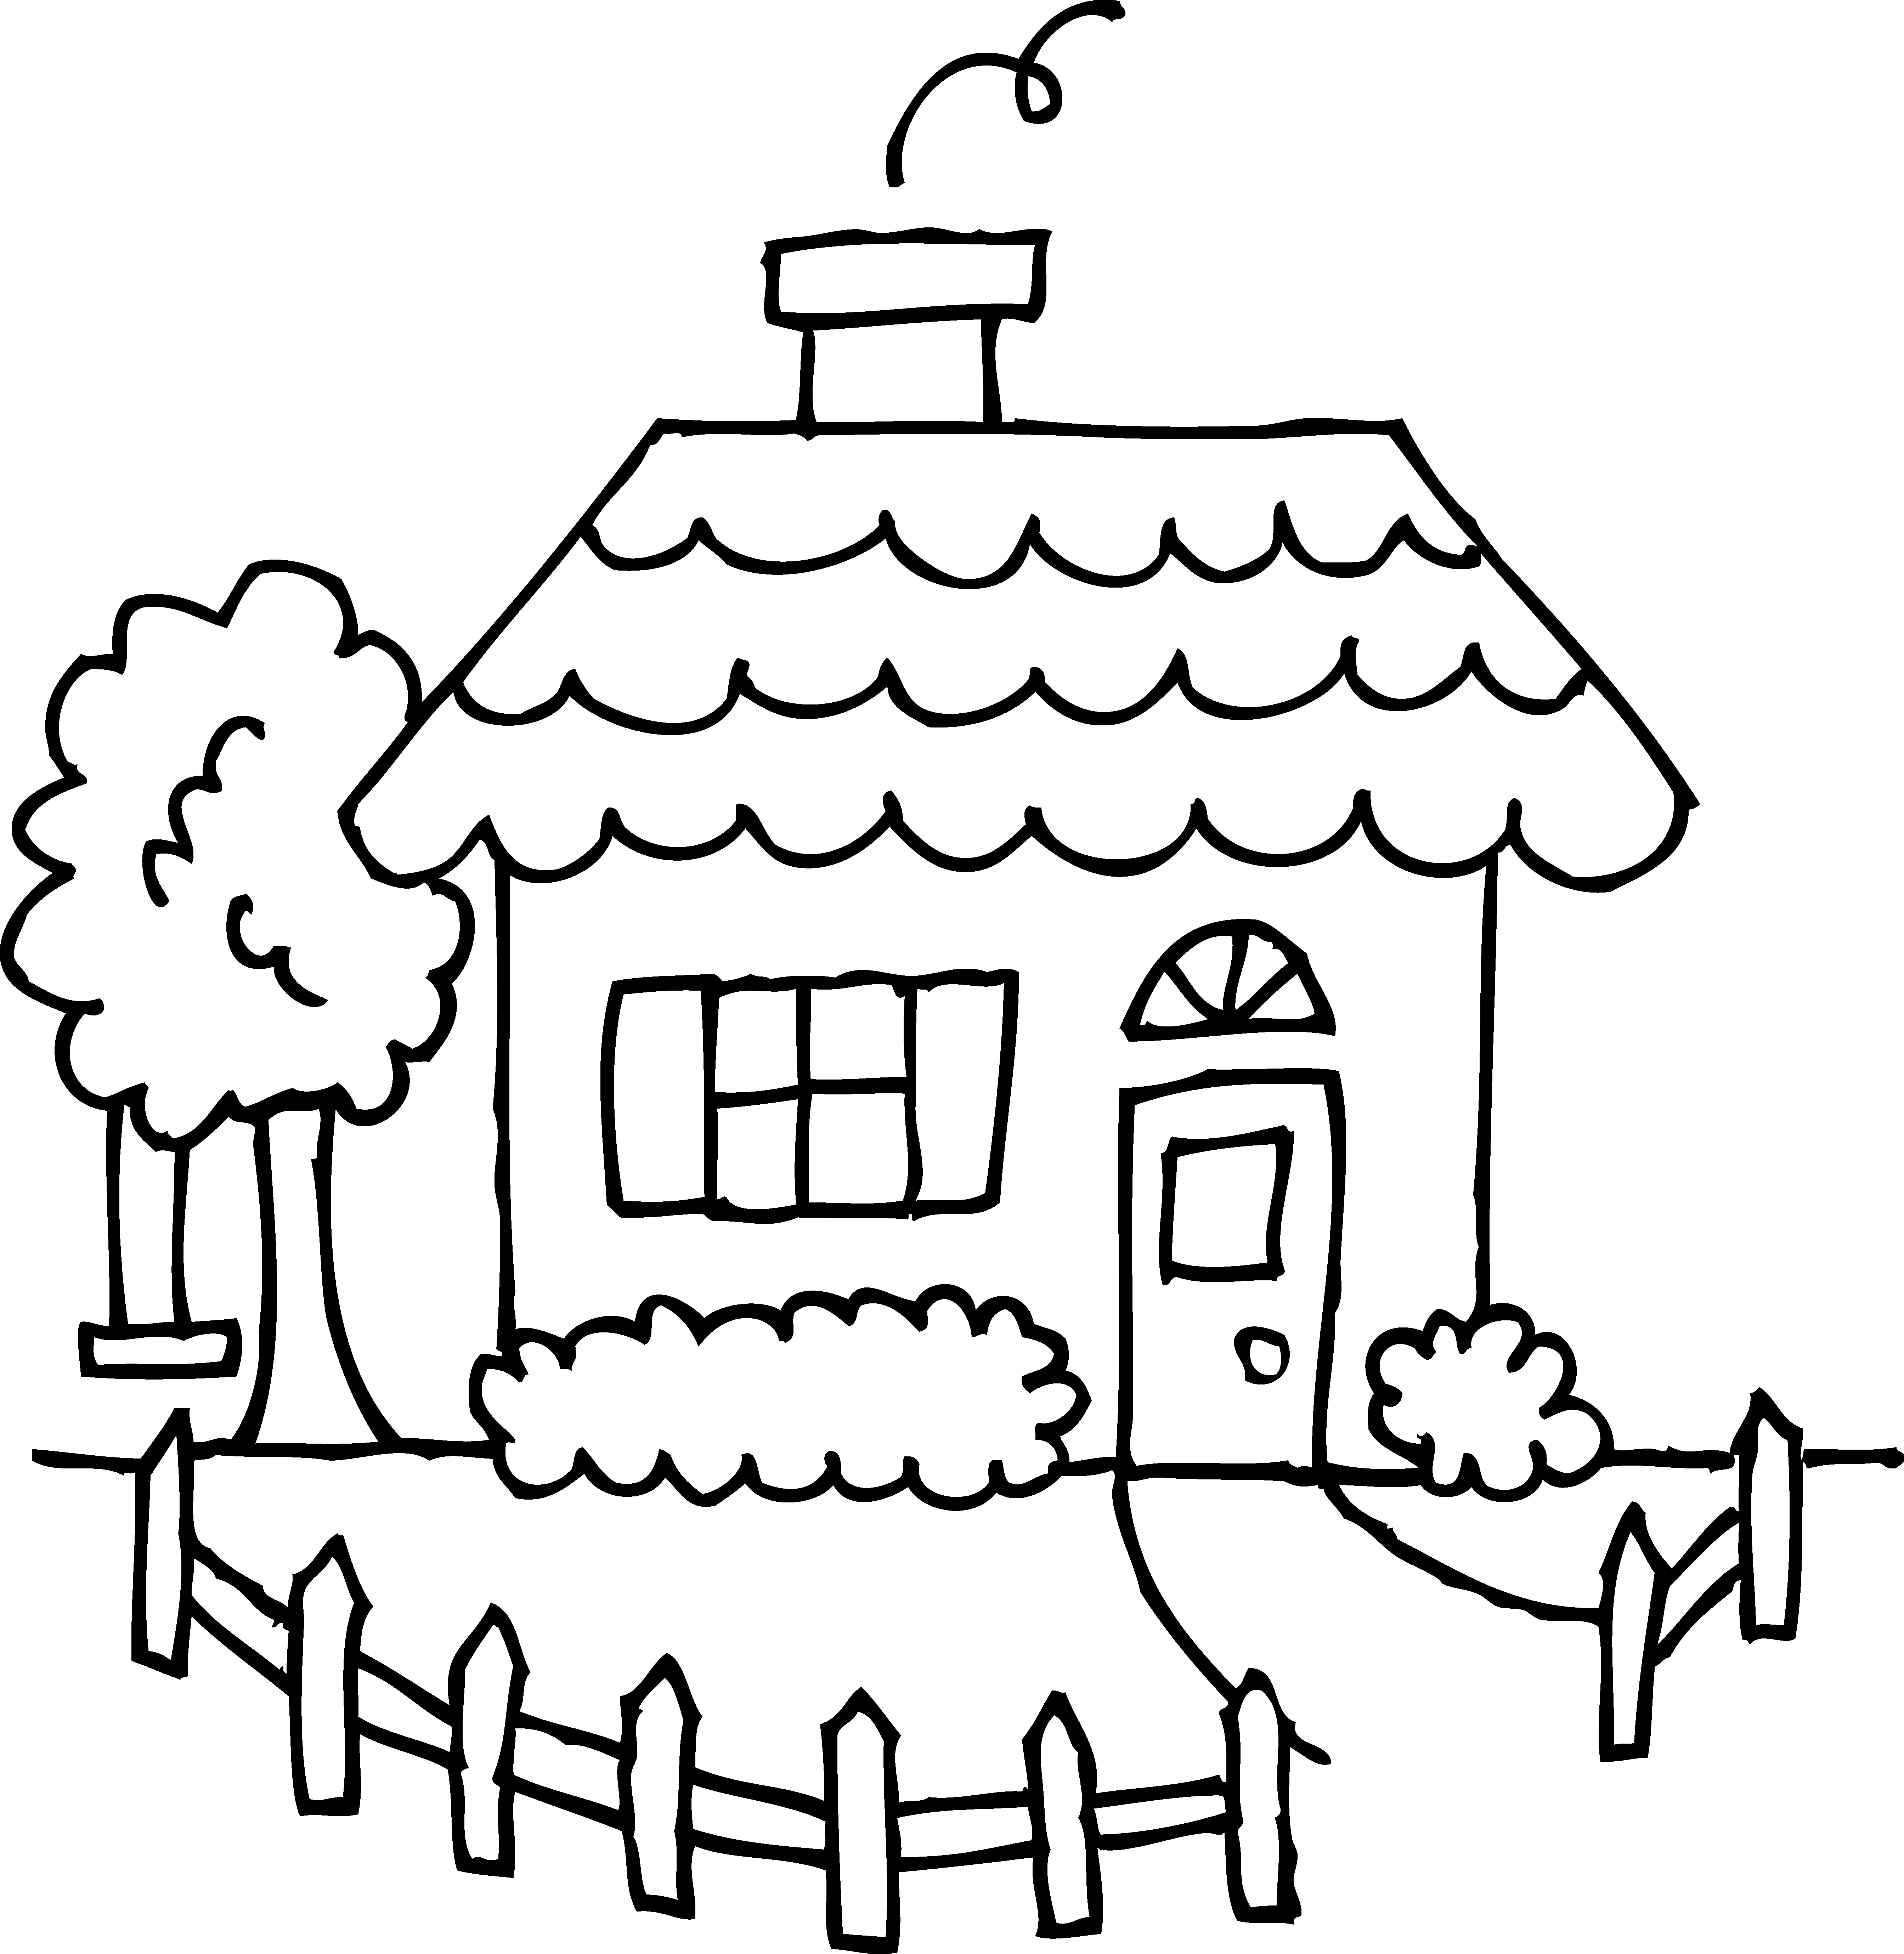 Free House Images, Download Free Clip Art, Free Clip Art